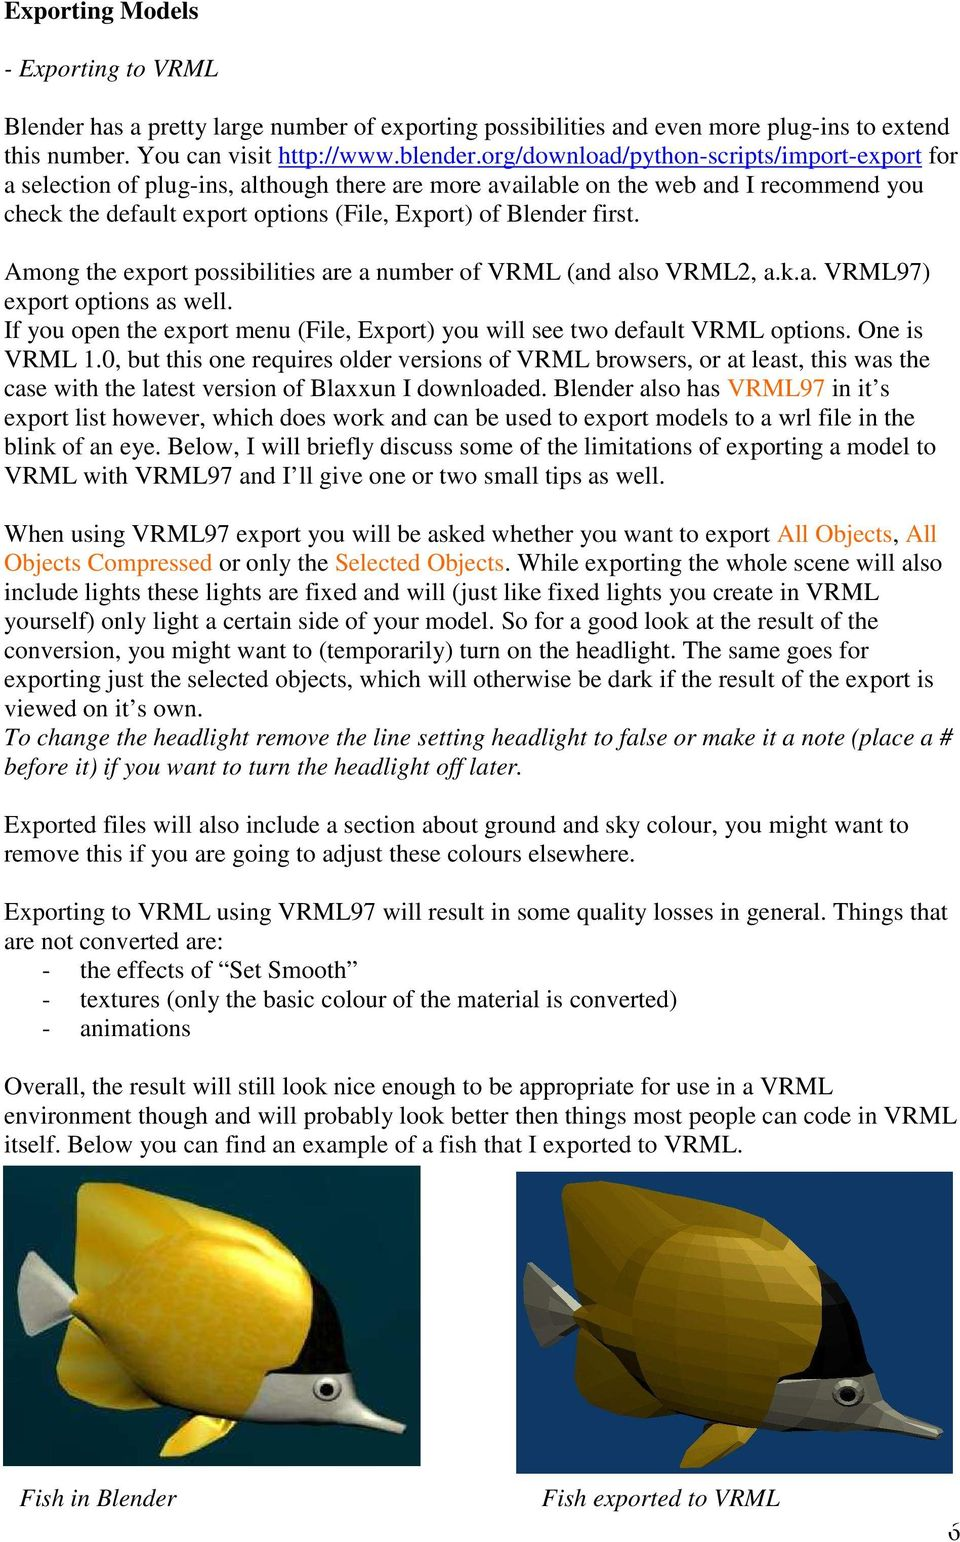 first. Among the export possibilities are a number of VRML (and also VRML2, a.k.a. VRML97) export options as well. If you open the export menu (File, Export) you will see two default VRML options.